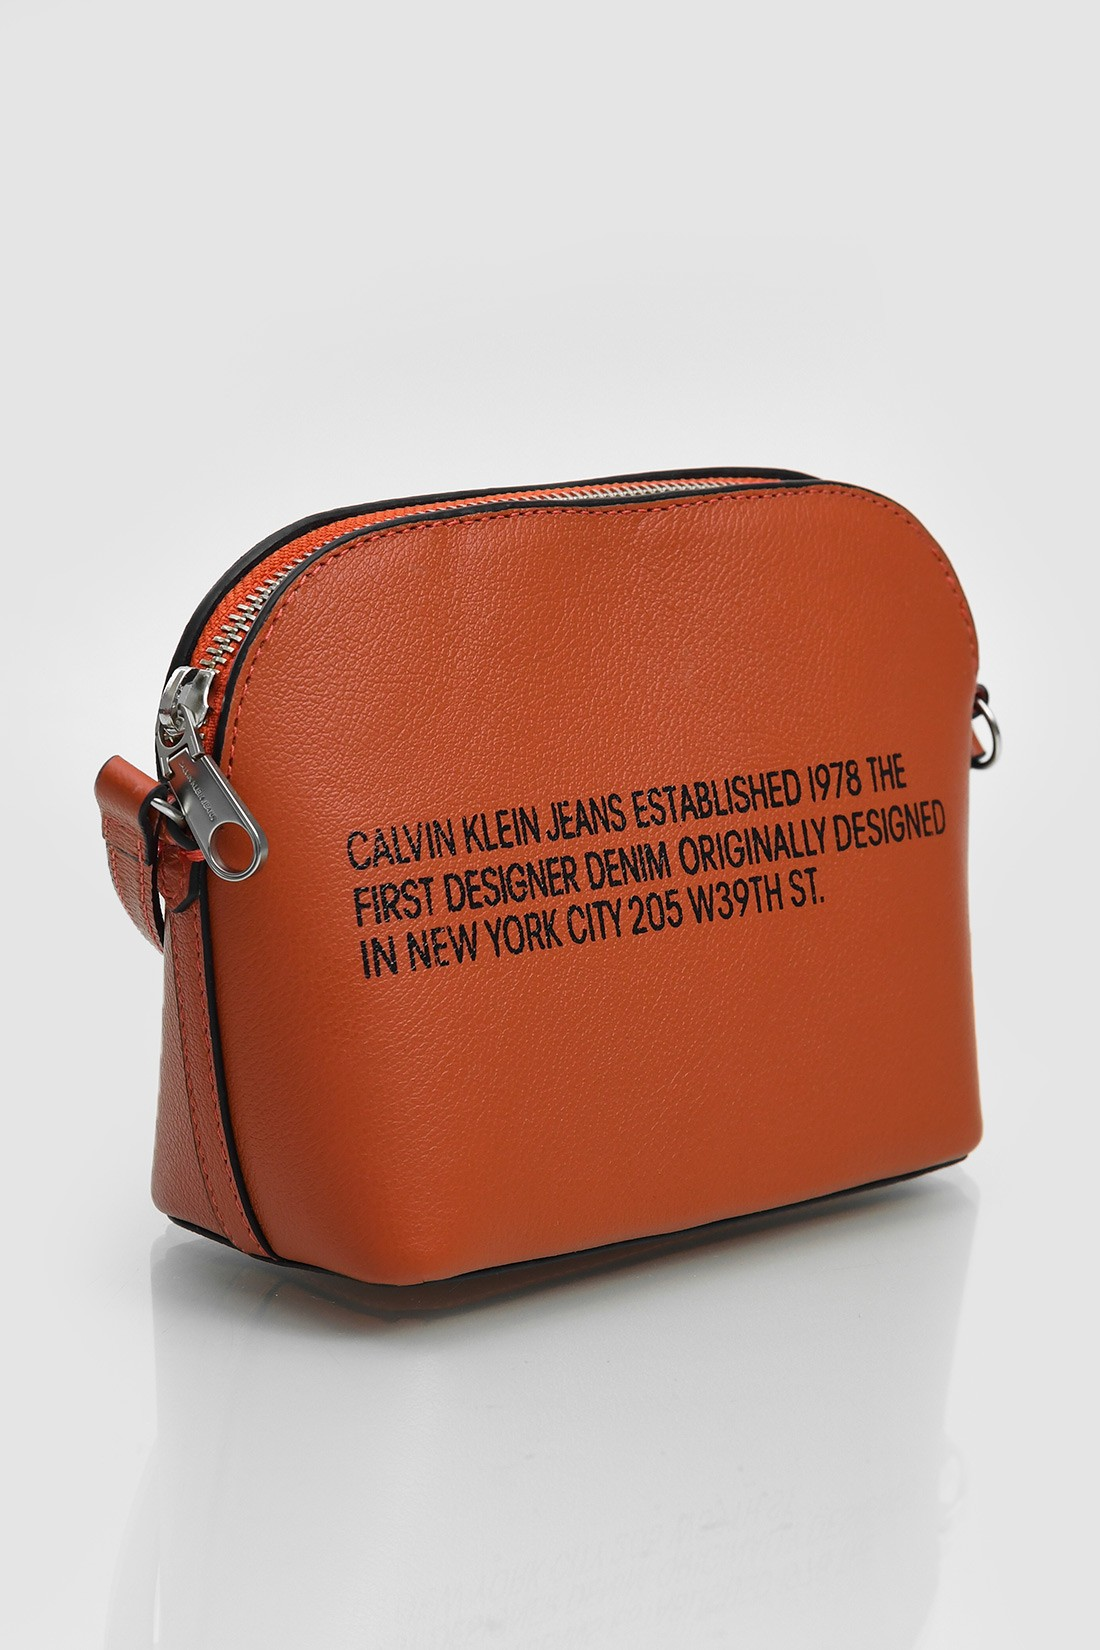 Bolsa Calvin Klein Sculpted Established